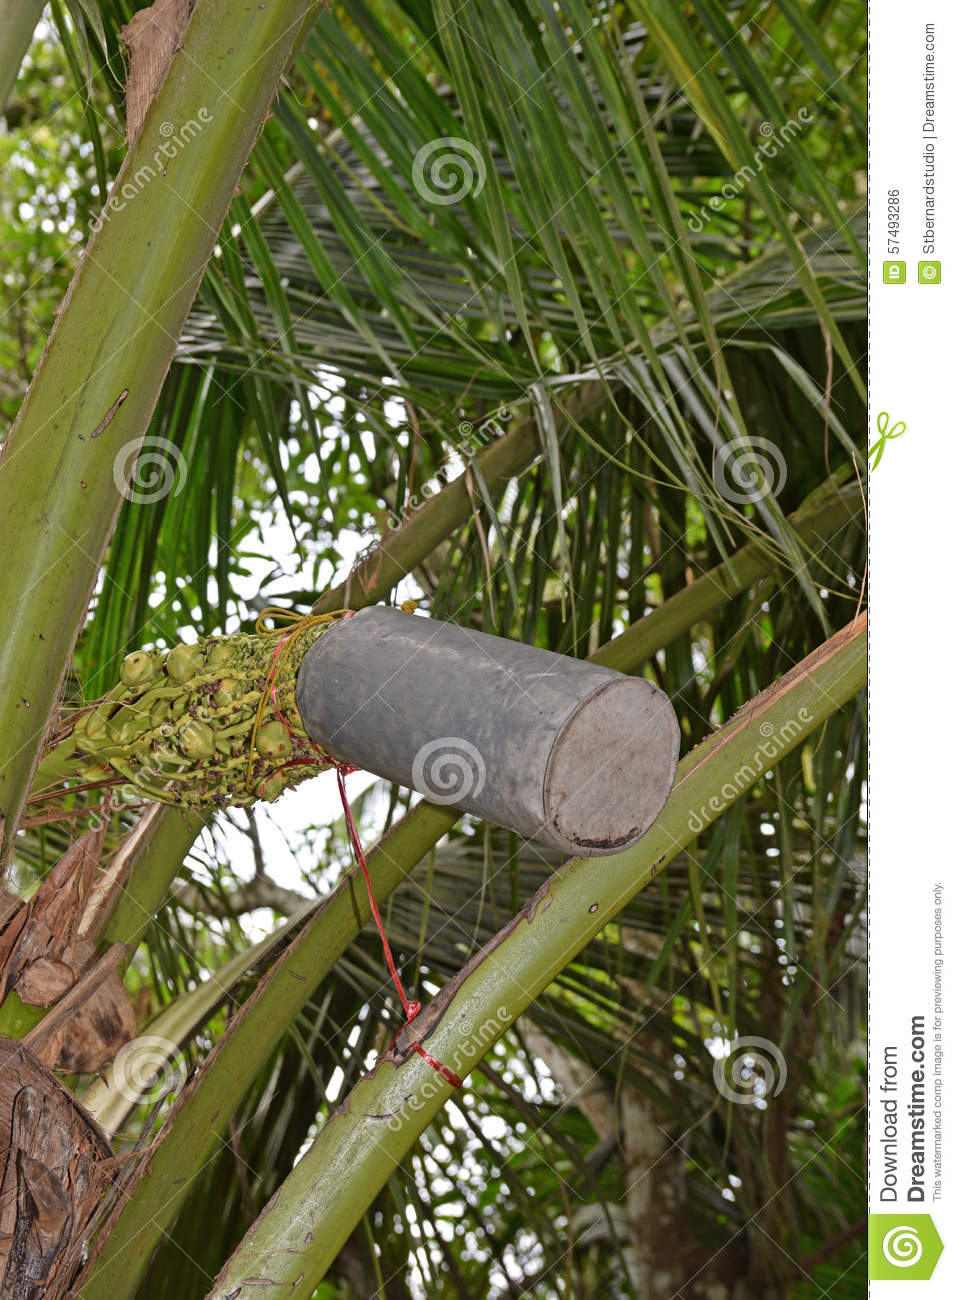 Tapping coconut tree flower blossoms for the sap by using container to produce sugar